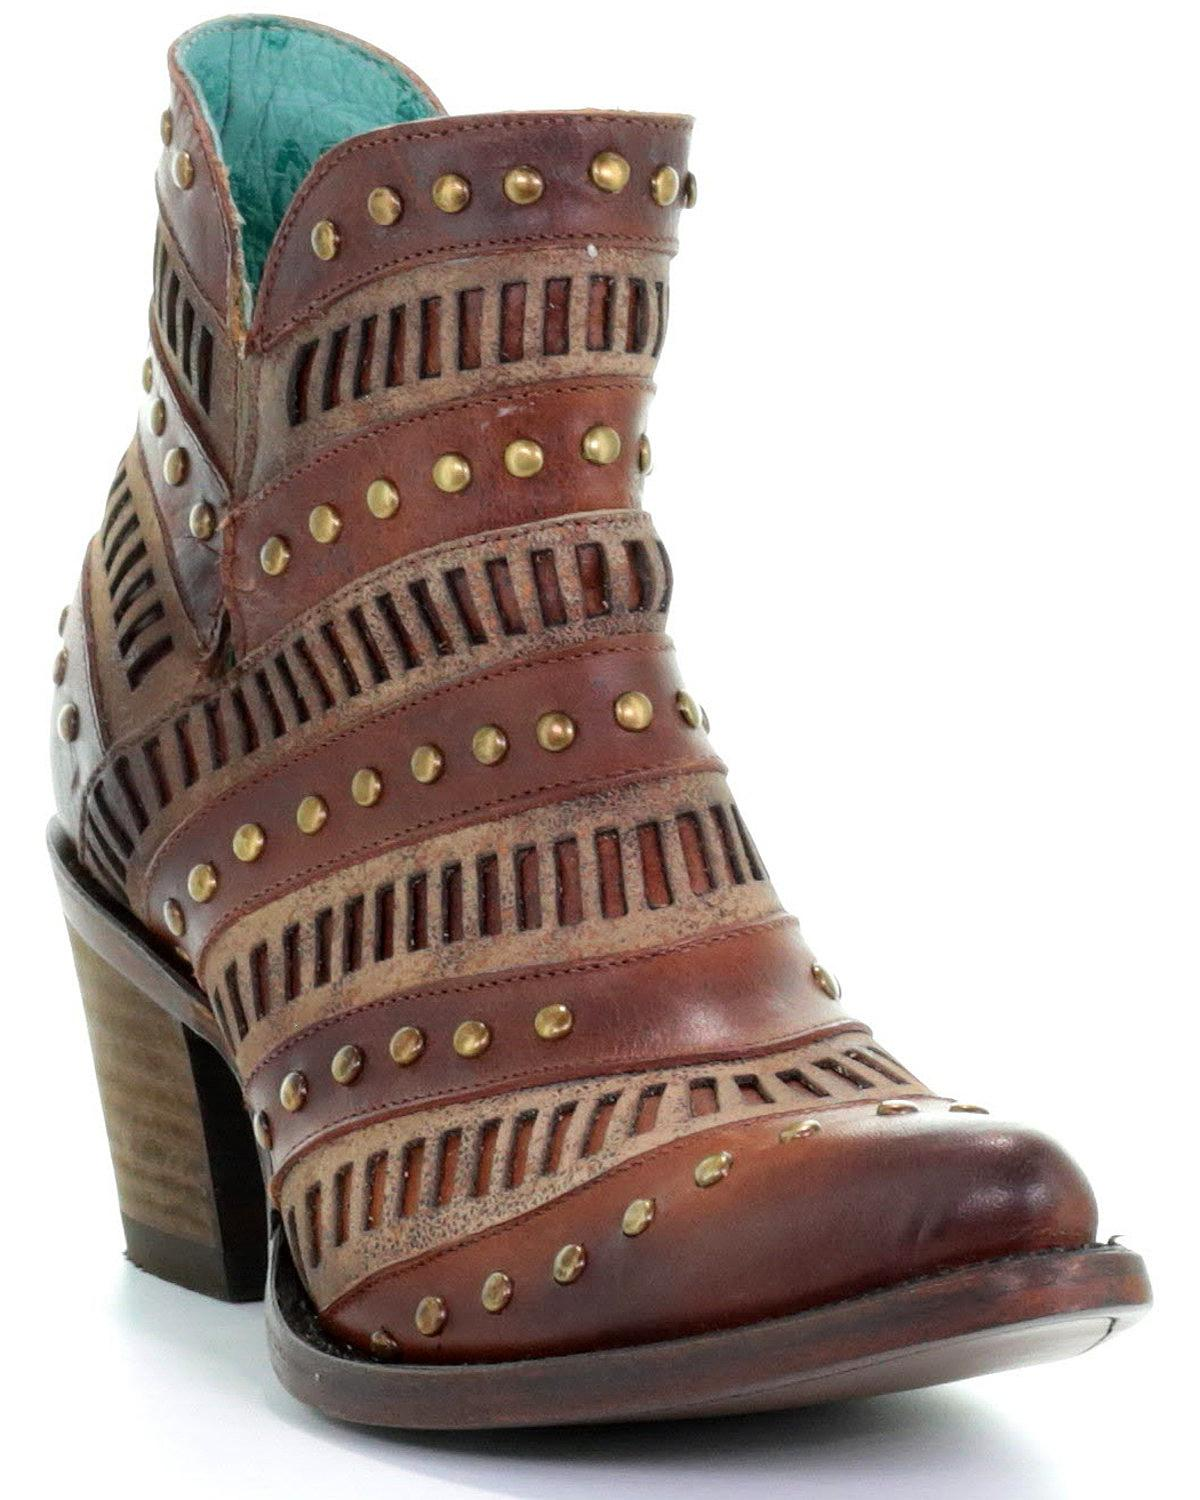 3c5f163122f Details about Corral Women's Studded Inlay Western Booties - Pointed Toe -  E1422